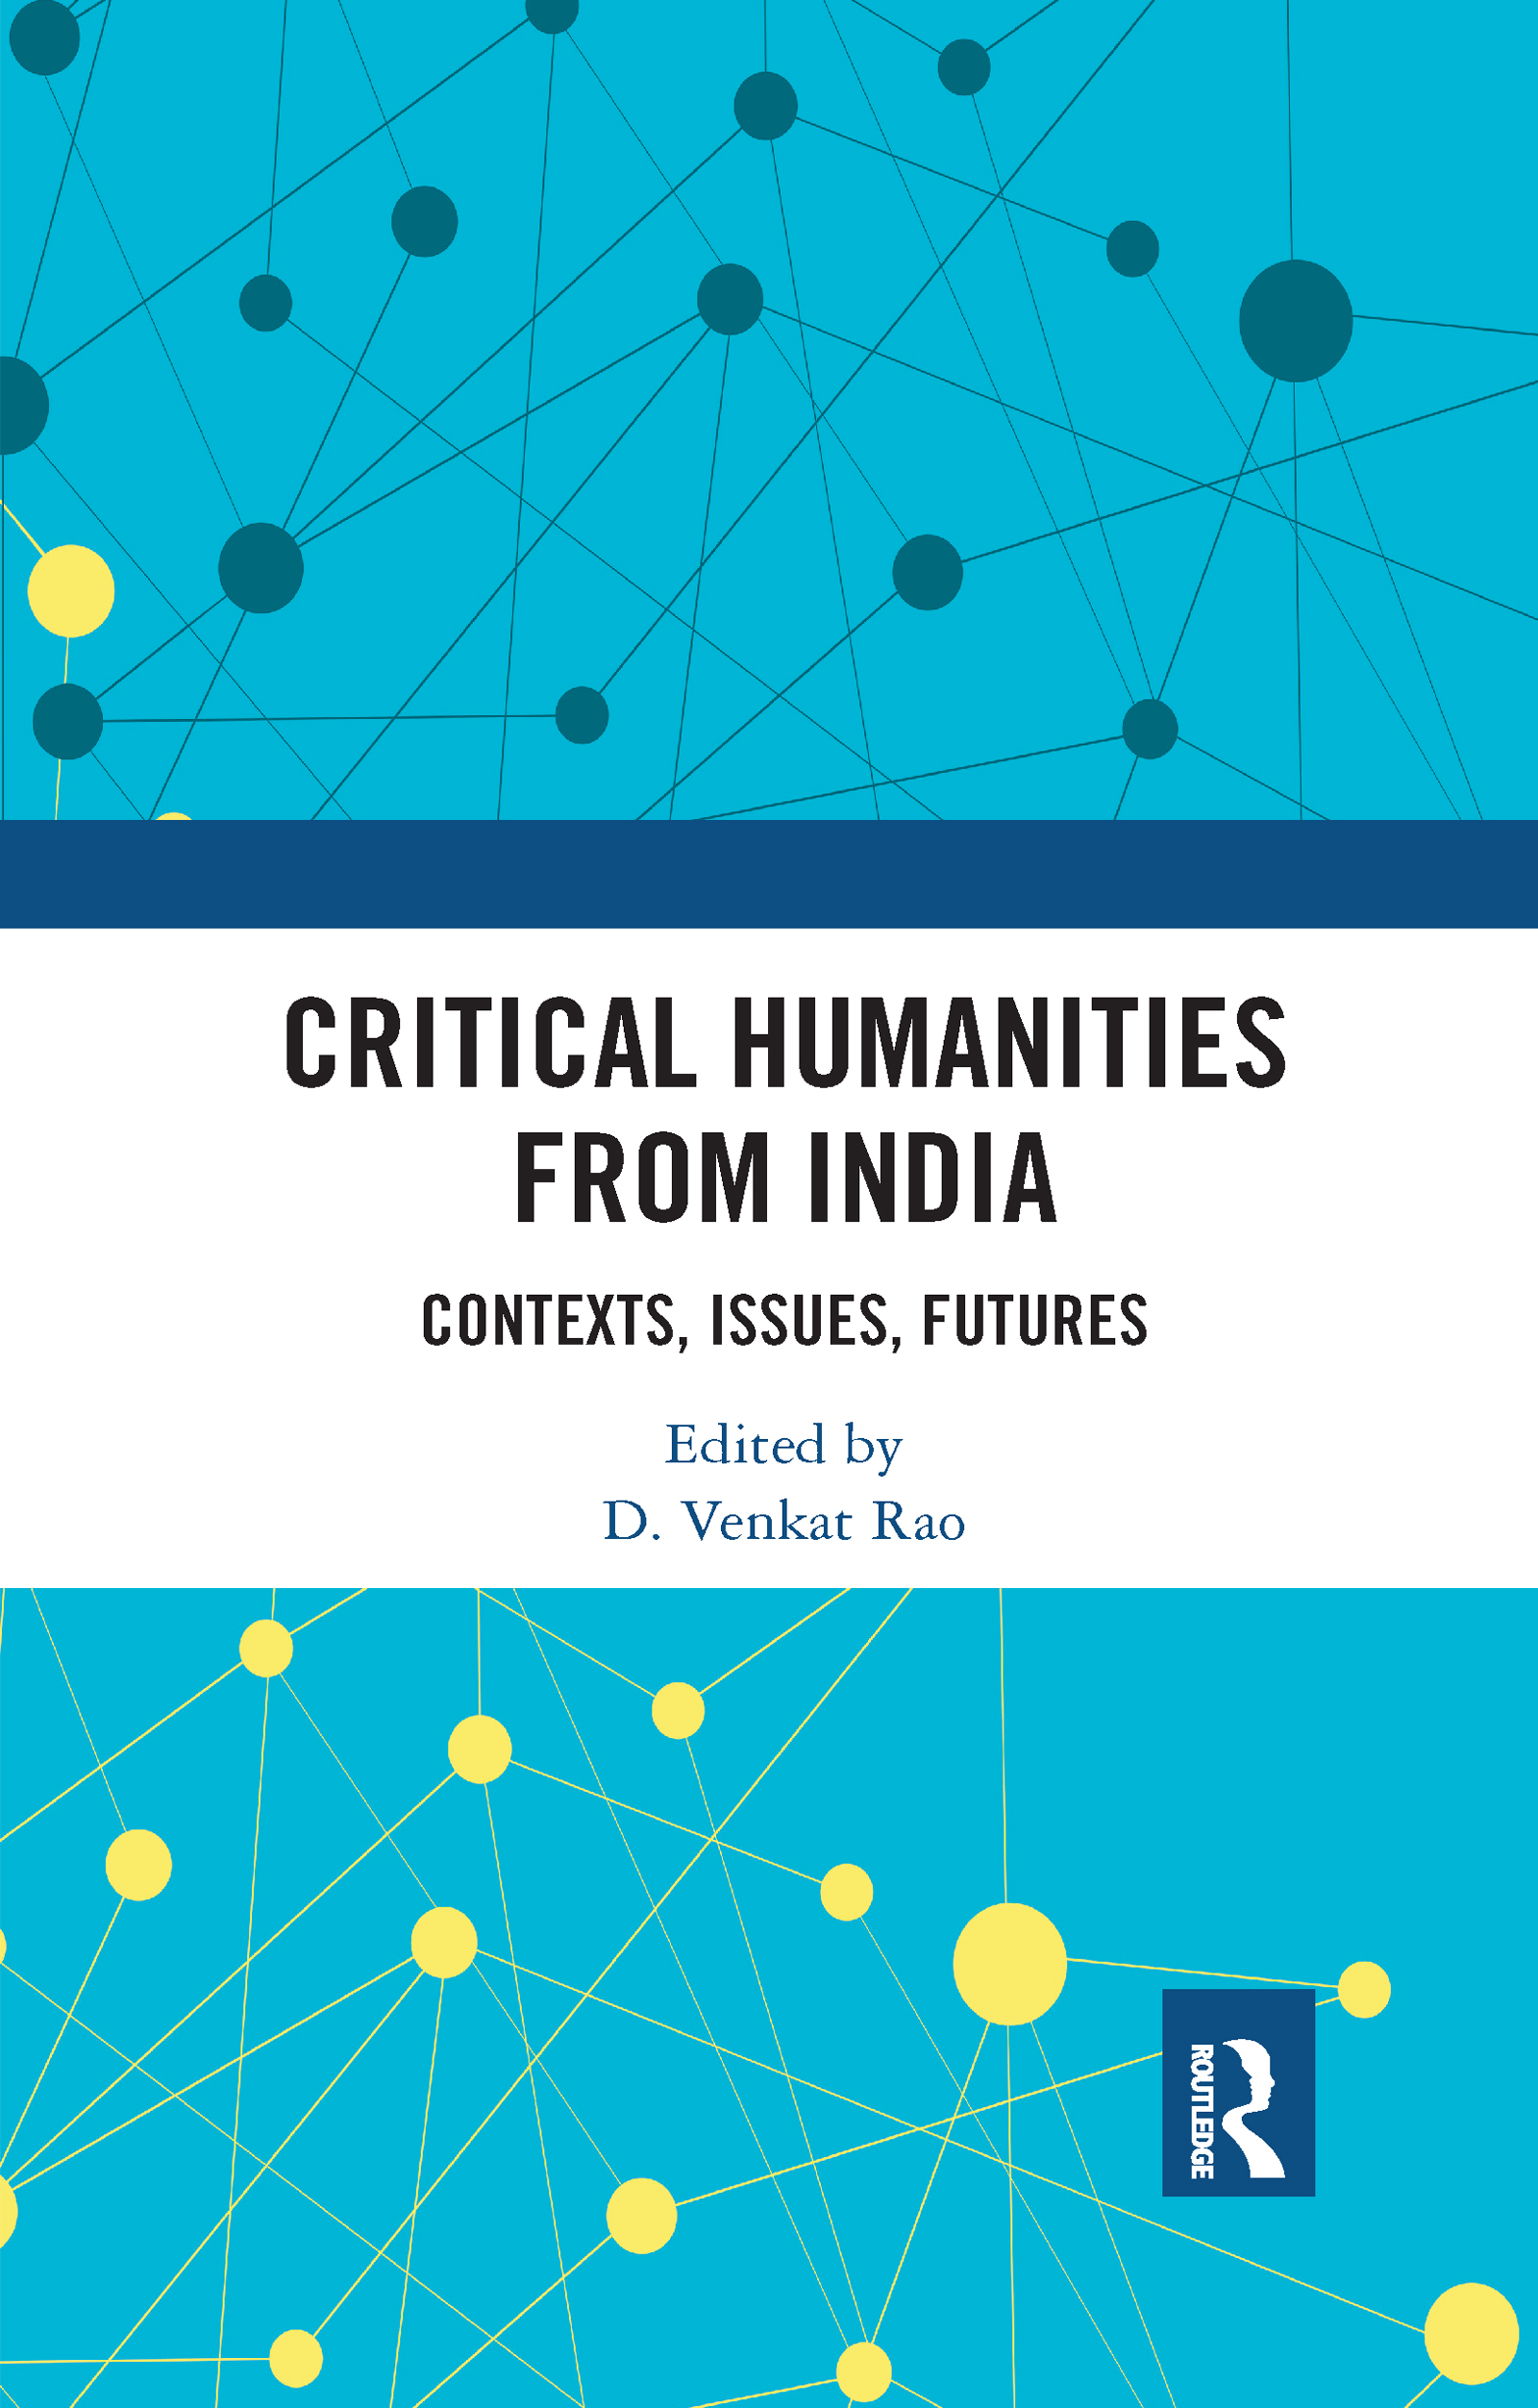 Critical Humanities from India